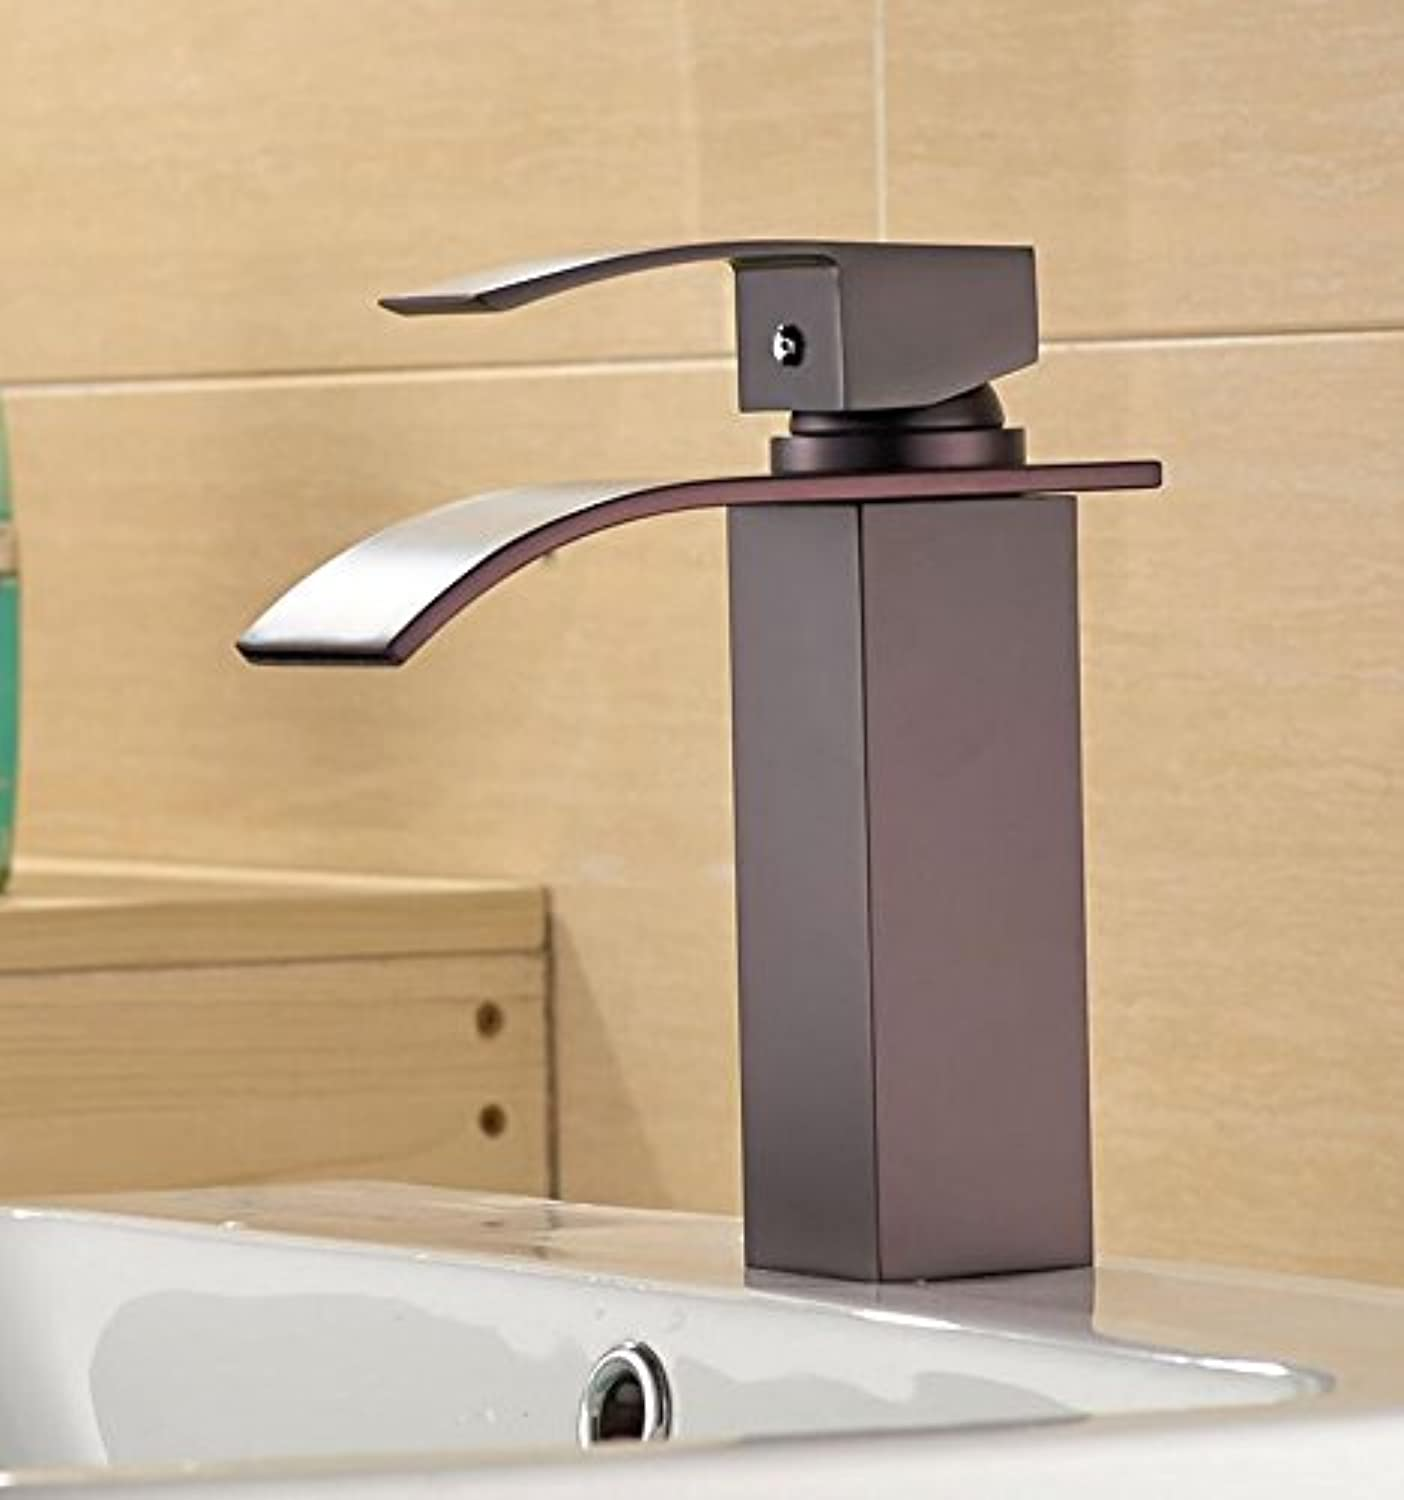 Makej Waterfall Basin Faucet Brass Deck Mounted Wash Face Sink Taps Water Mixer Bathroom Toilet Basin Faucets